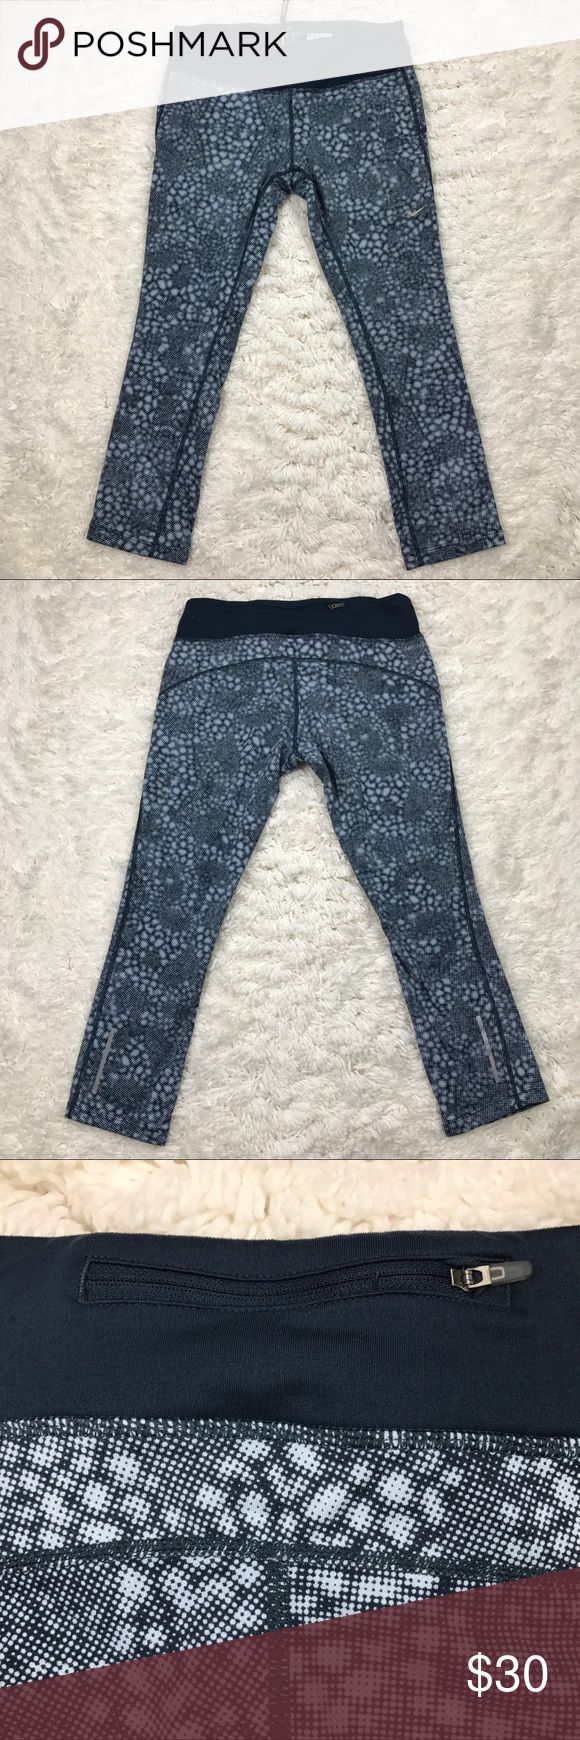 """Nike Dri-Fit Epic Run Printed Tights Nike Dri Fit Women's Epic Run Printed Tight Cropped Legging   Blue and White print with Navy Blue waist band  Size Medium  Waist 14""""  Inseam 23""""  Body 86% Polyester / 14% Spandex  Gusset lining 100% Recycled Polyester Nike Pants"""